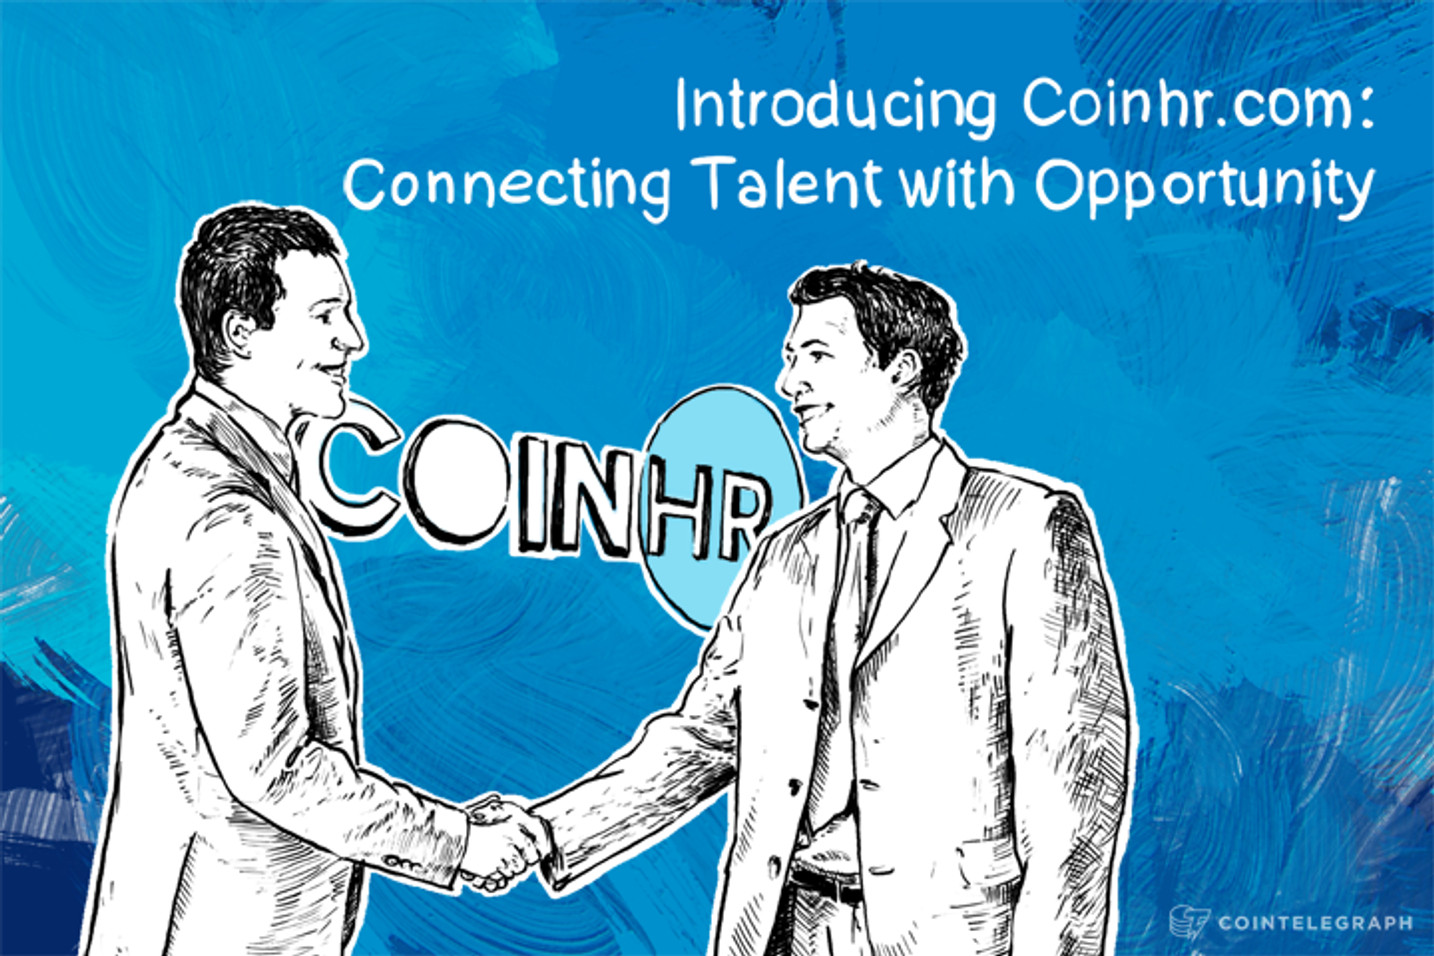 Introducing Coinhr.com: Connecting Talent with Opportunity